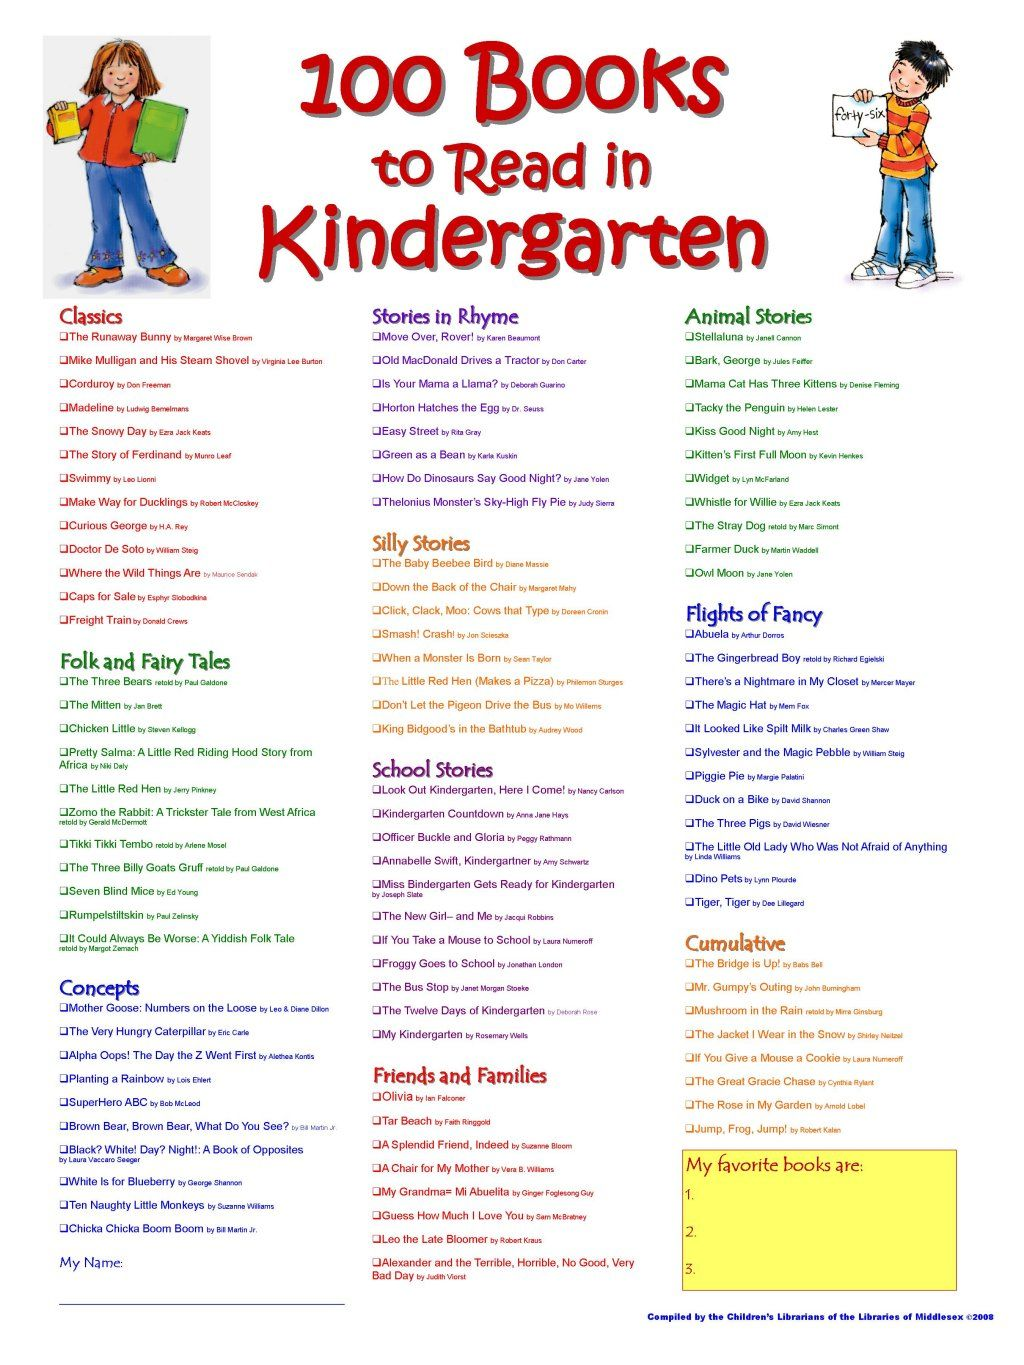 Printables Kindergarten Story the growing room ideas for teaching children reading comprehension before kindergarten